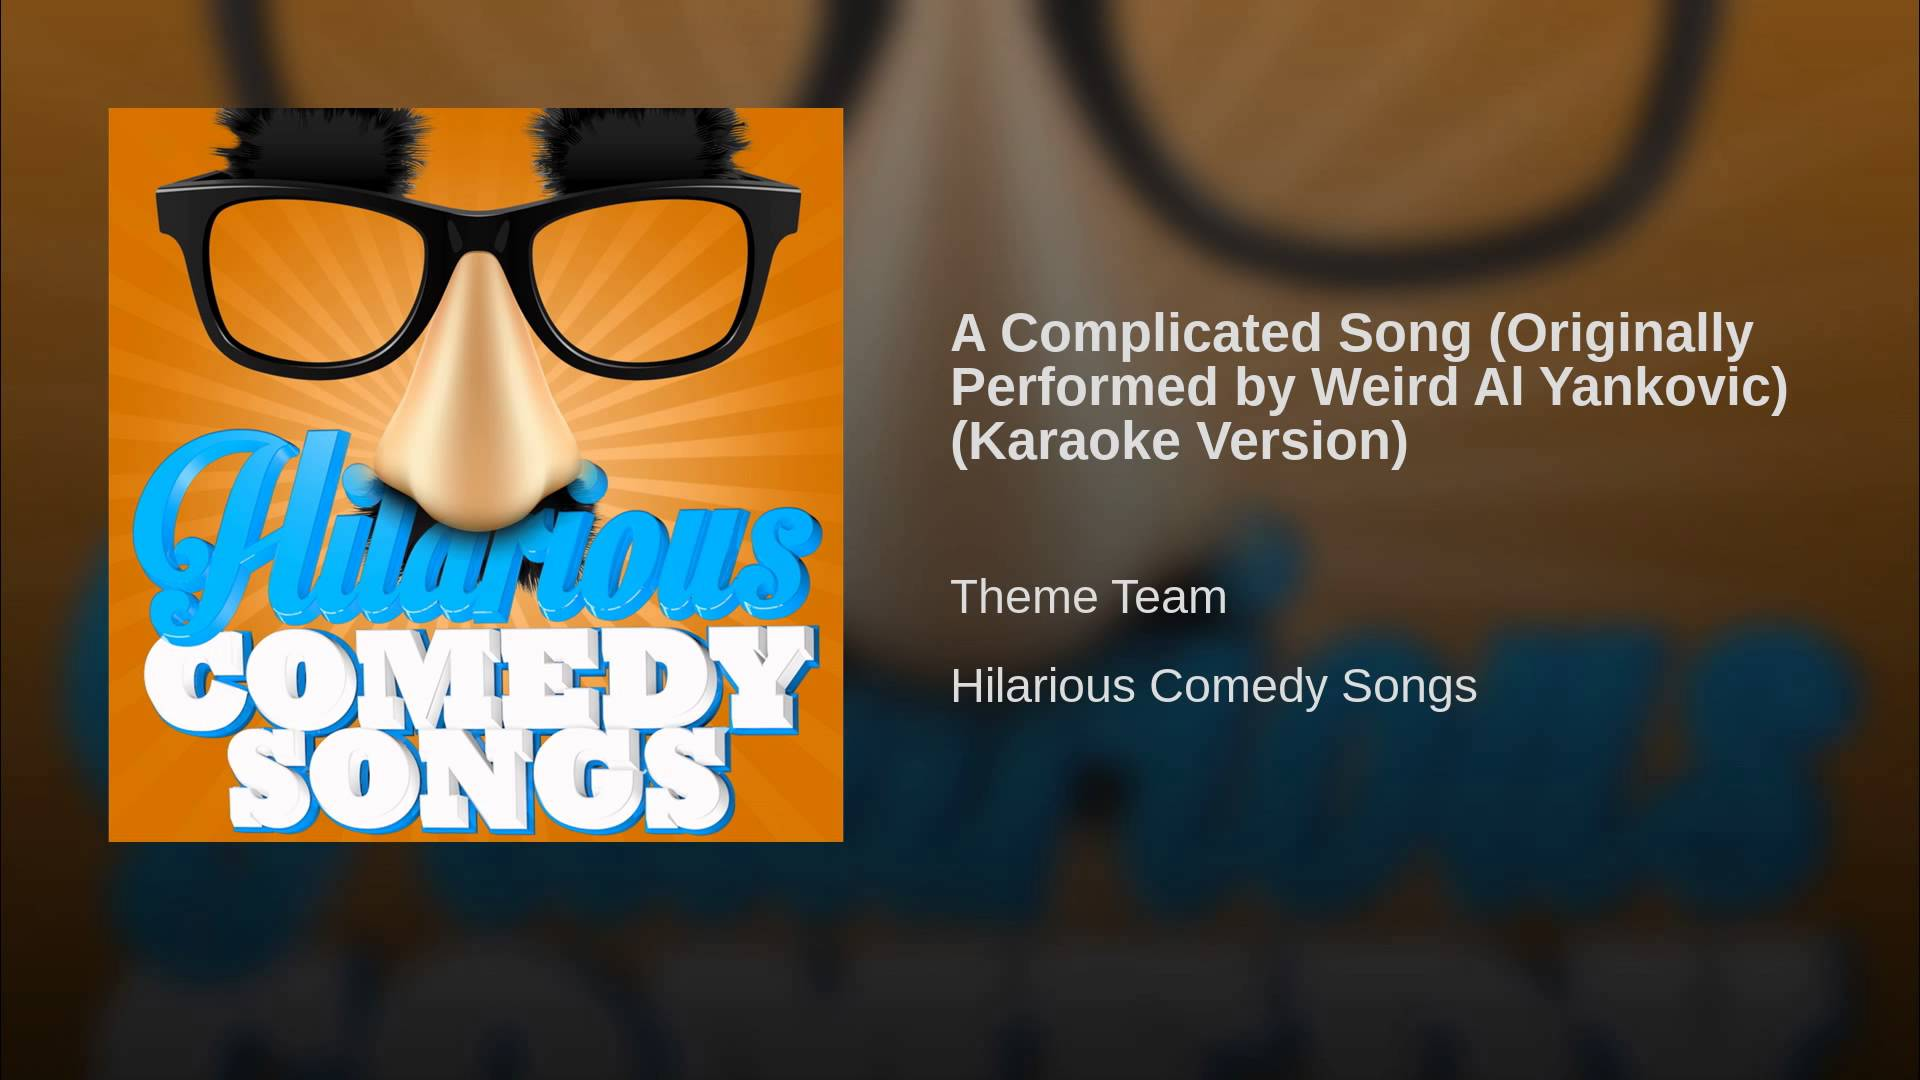 You can tell these comedy songs are hilarious because when have Groucho glasses ever been associated with anything hacky?